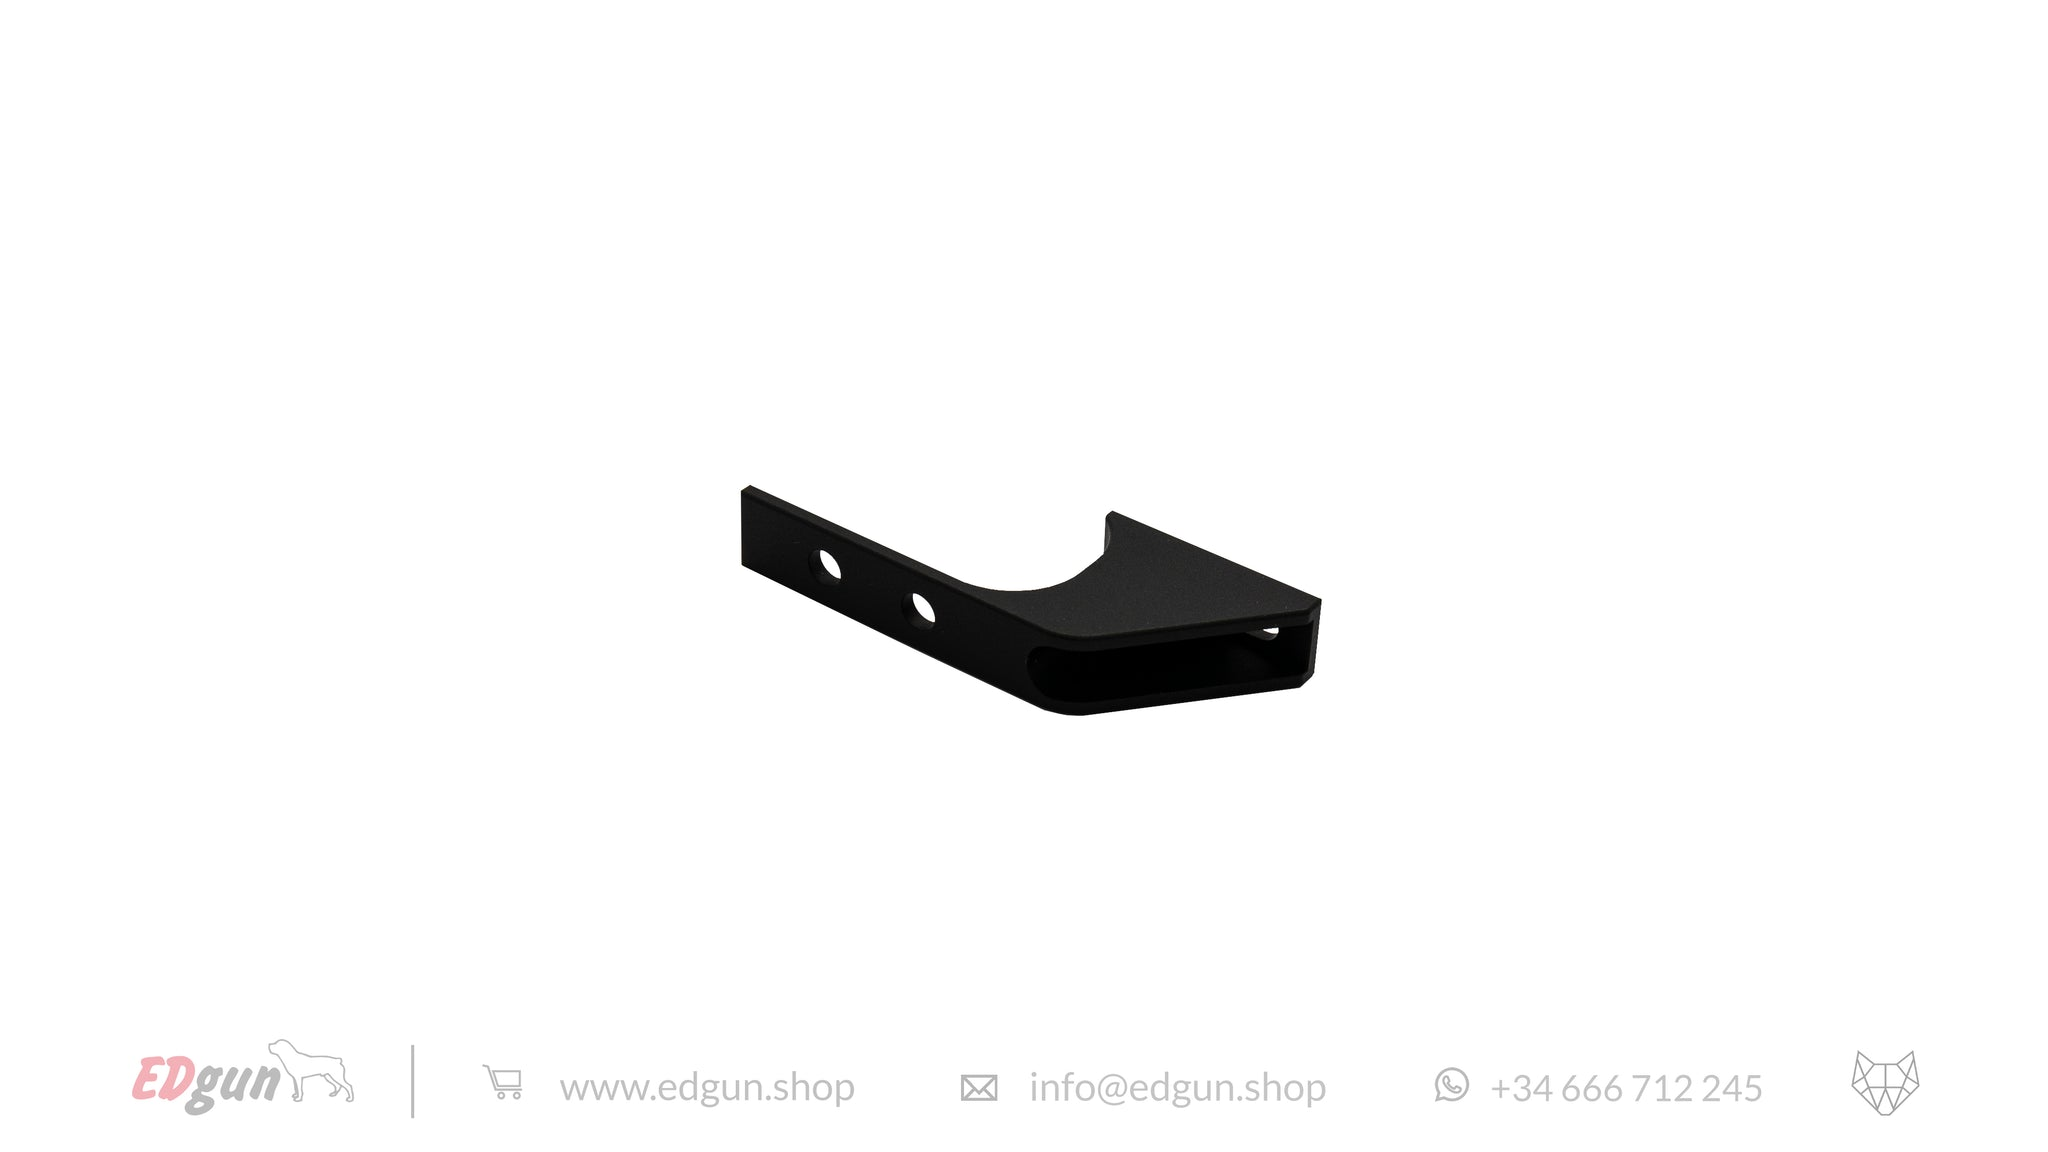 Trigger Guard for R5 and R5M - KL200009